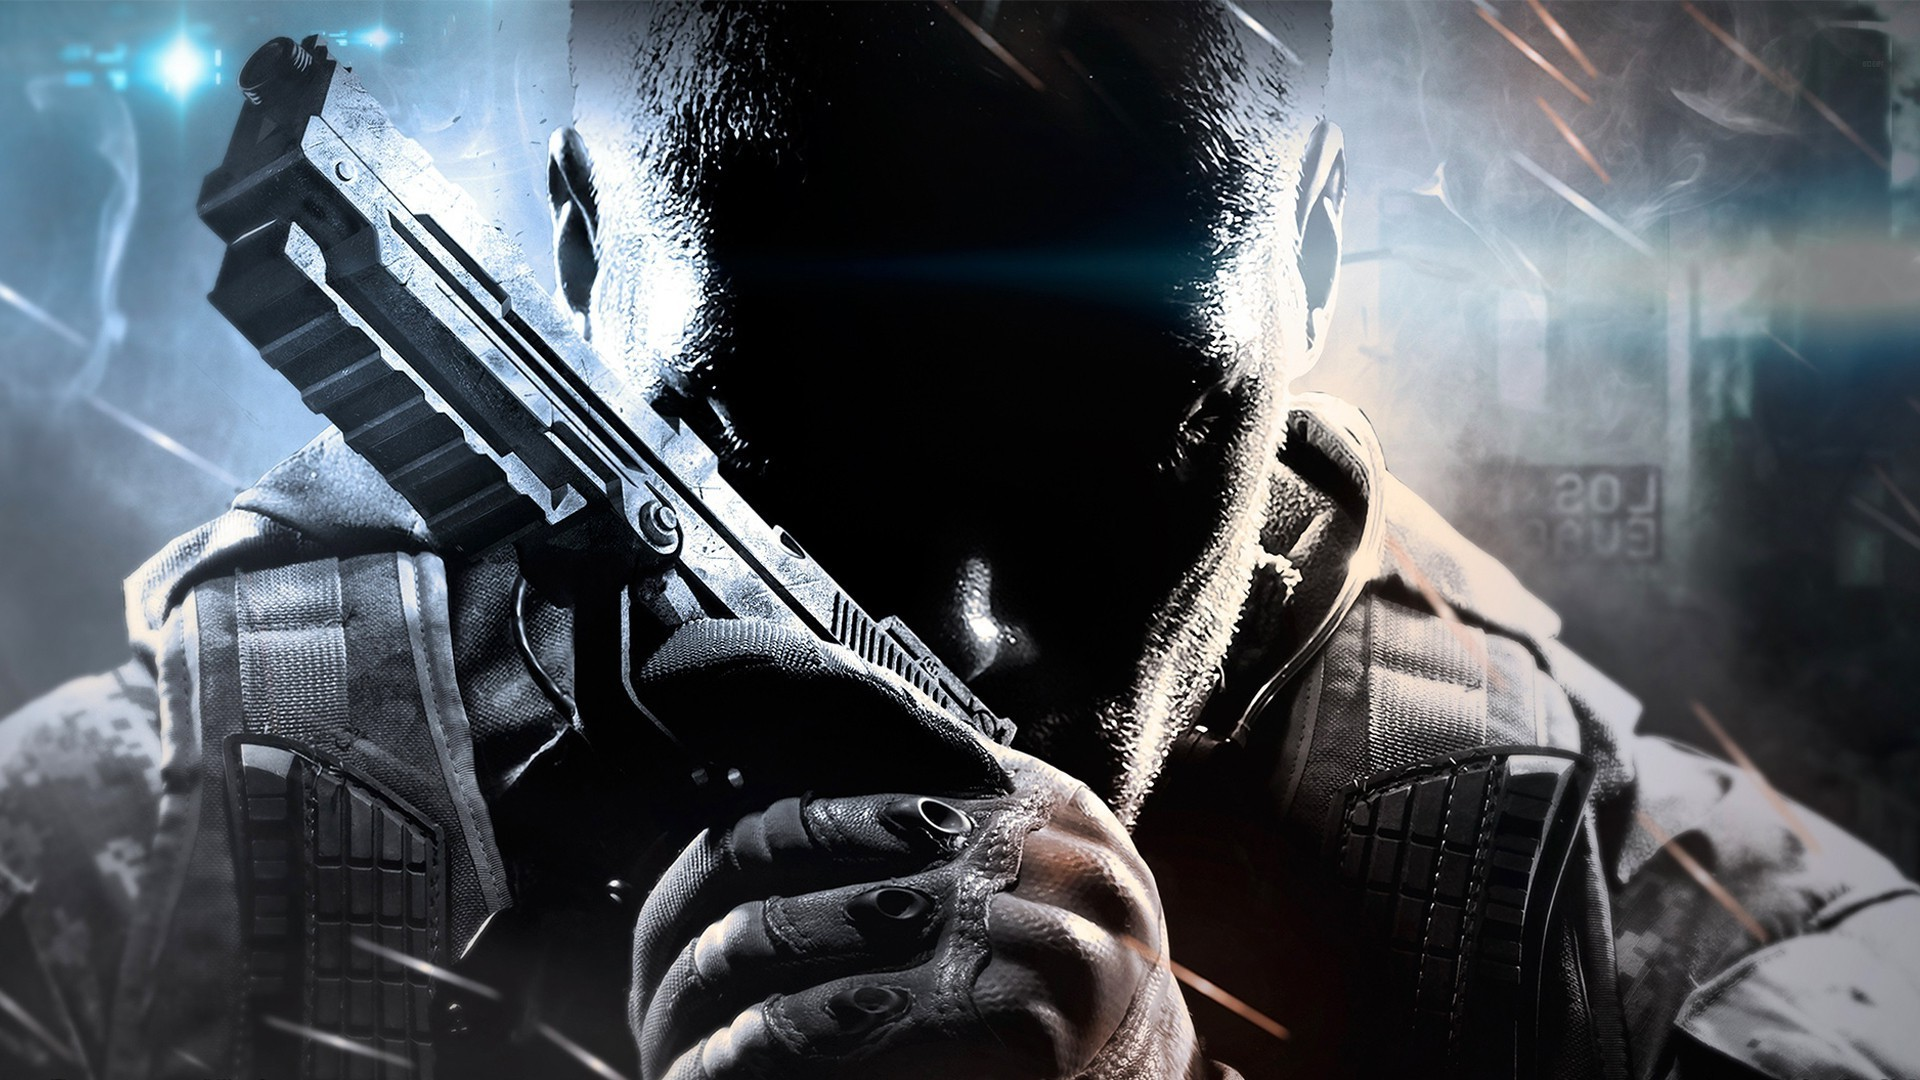 Black Ops Wallpaper 75 Pictures